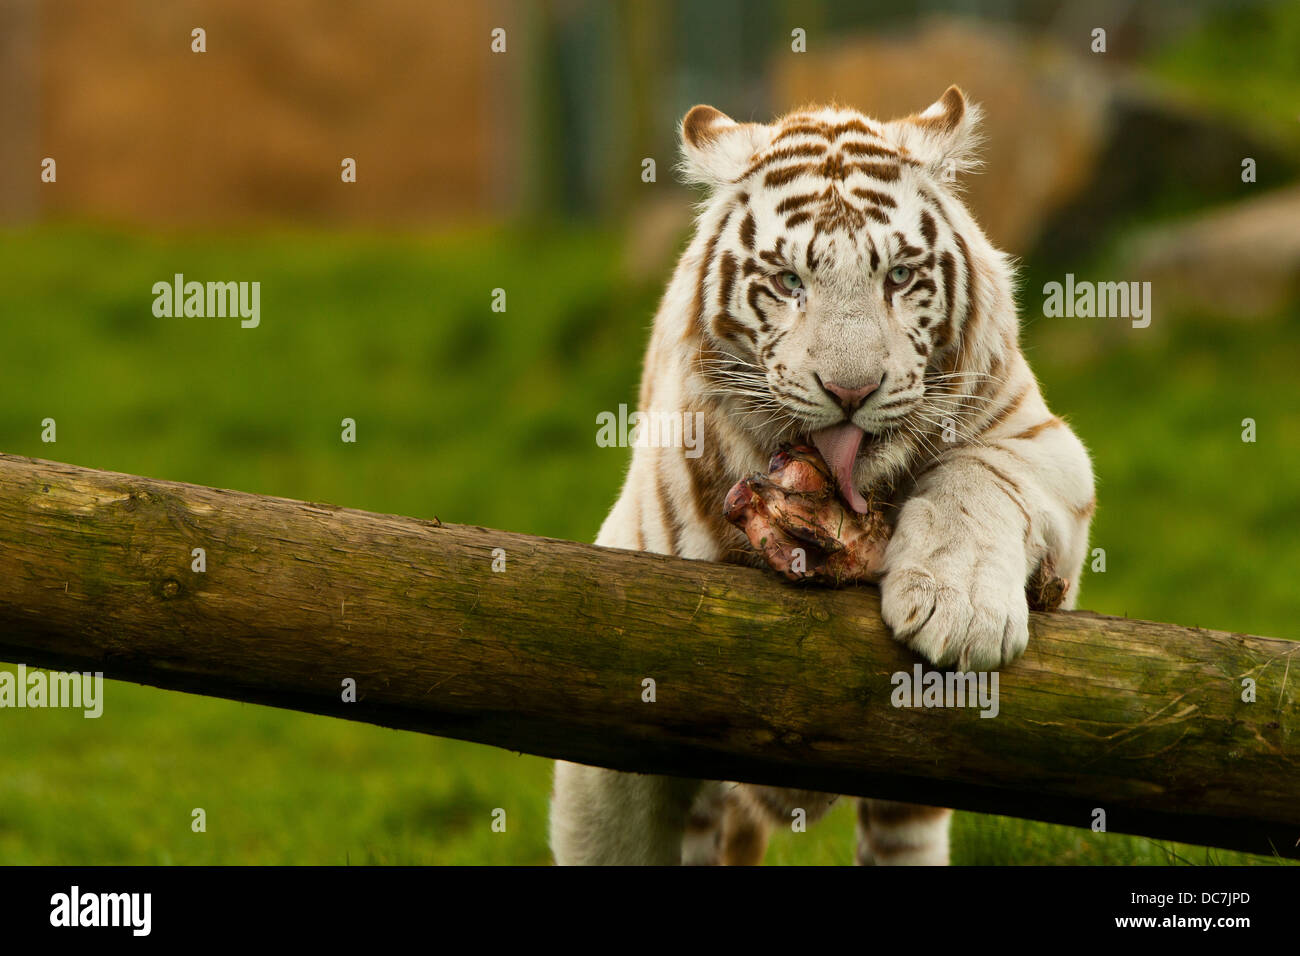 White Tiger Eating Mea...